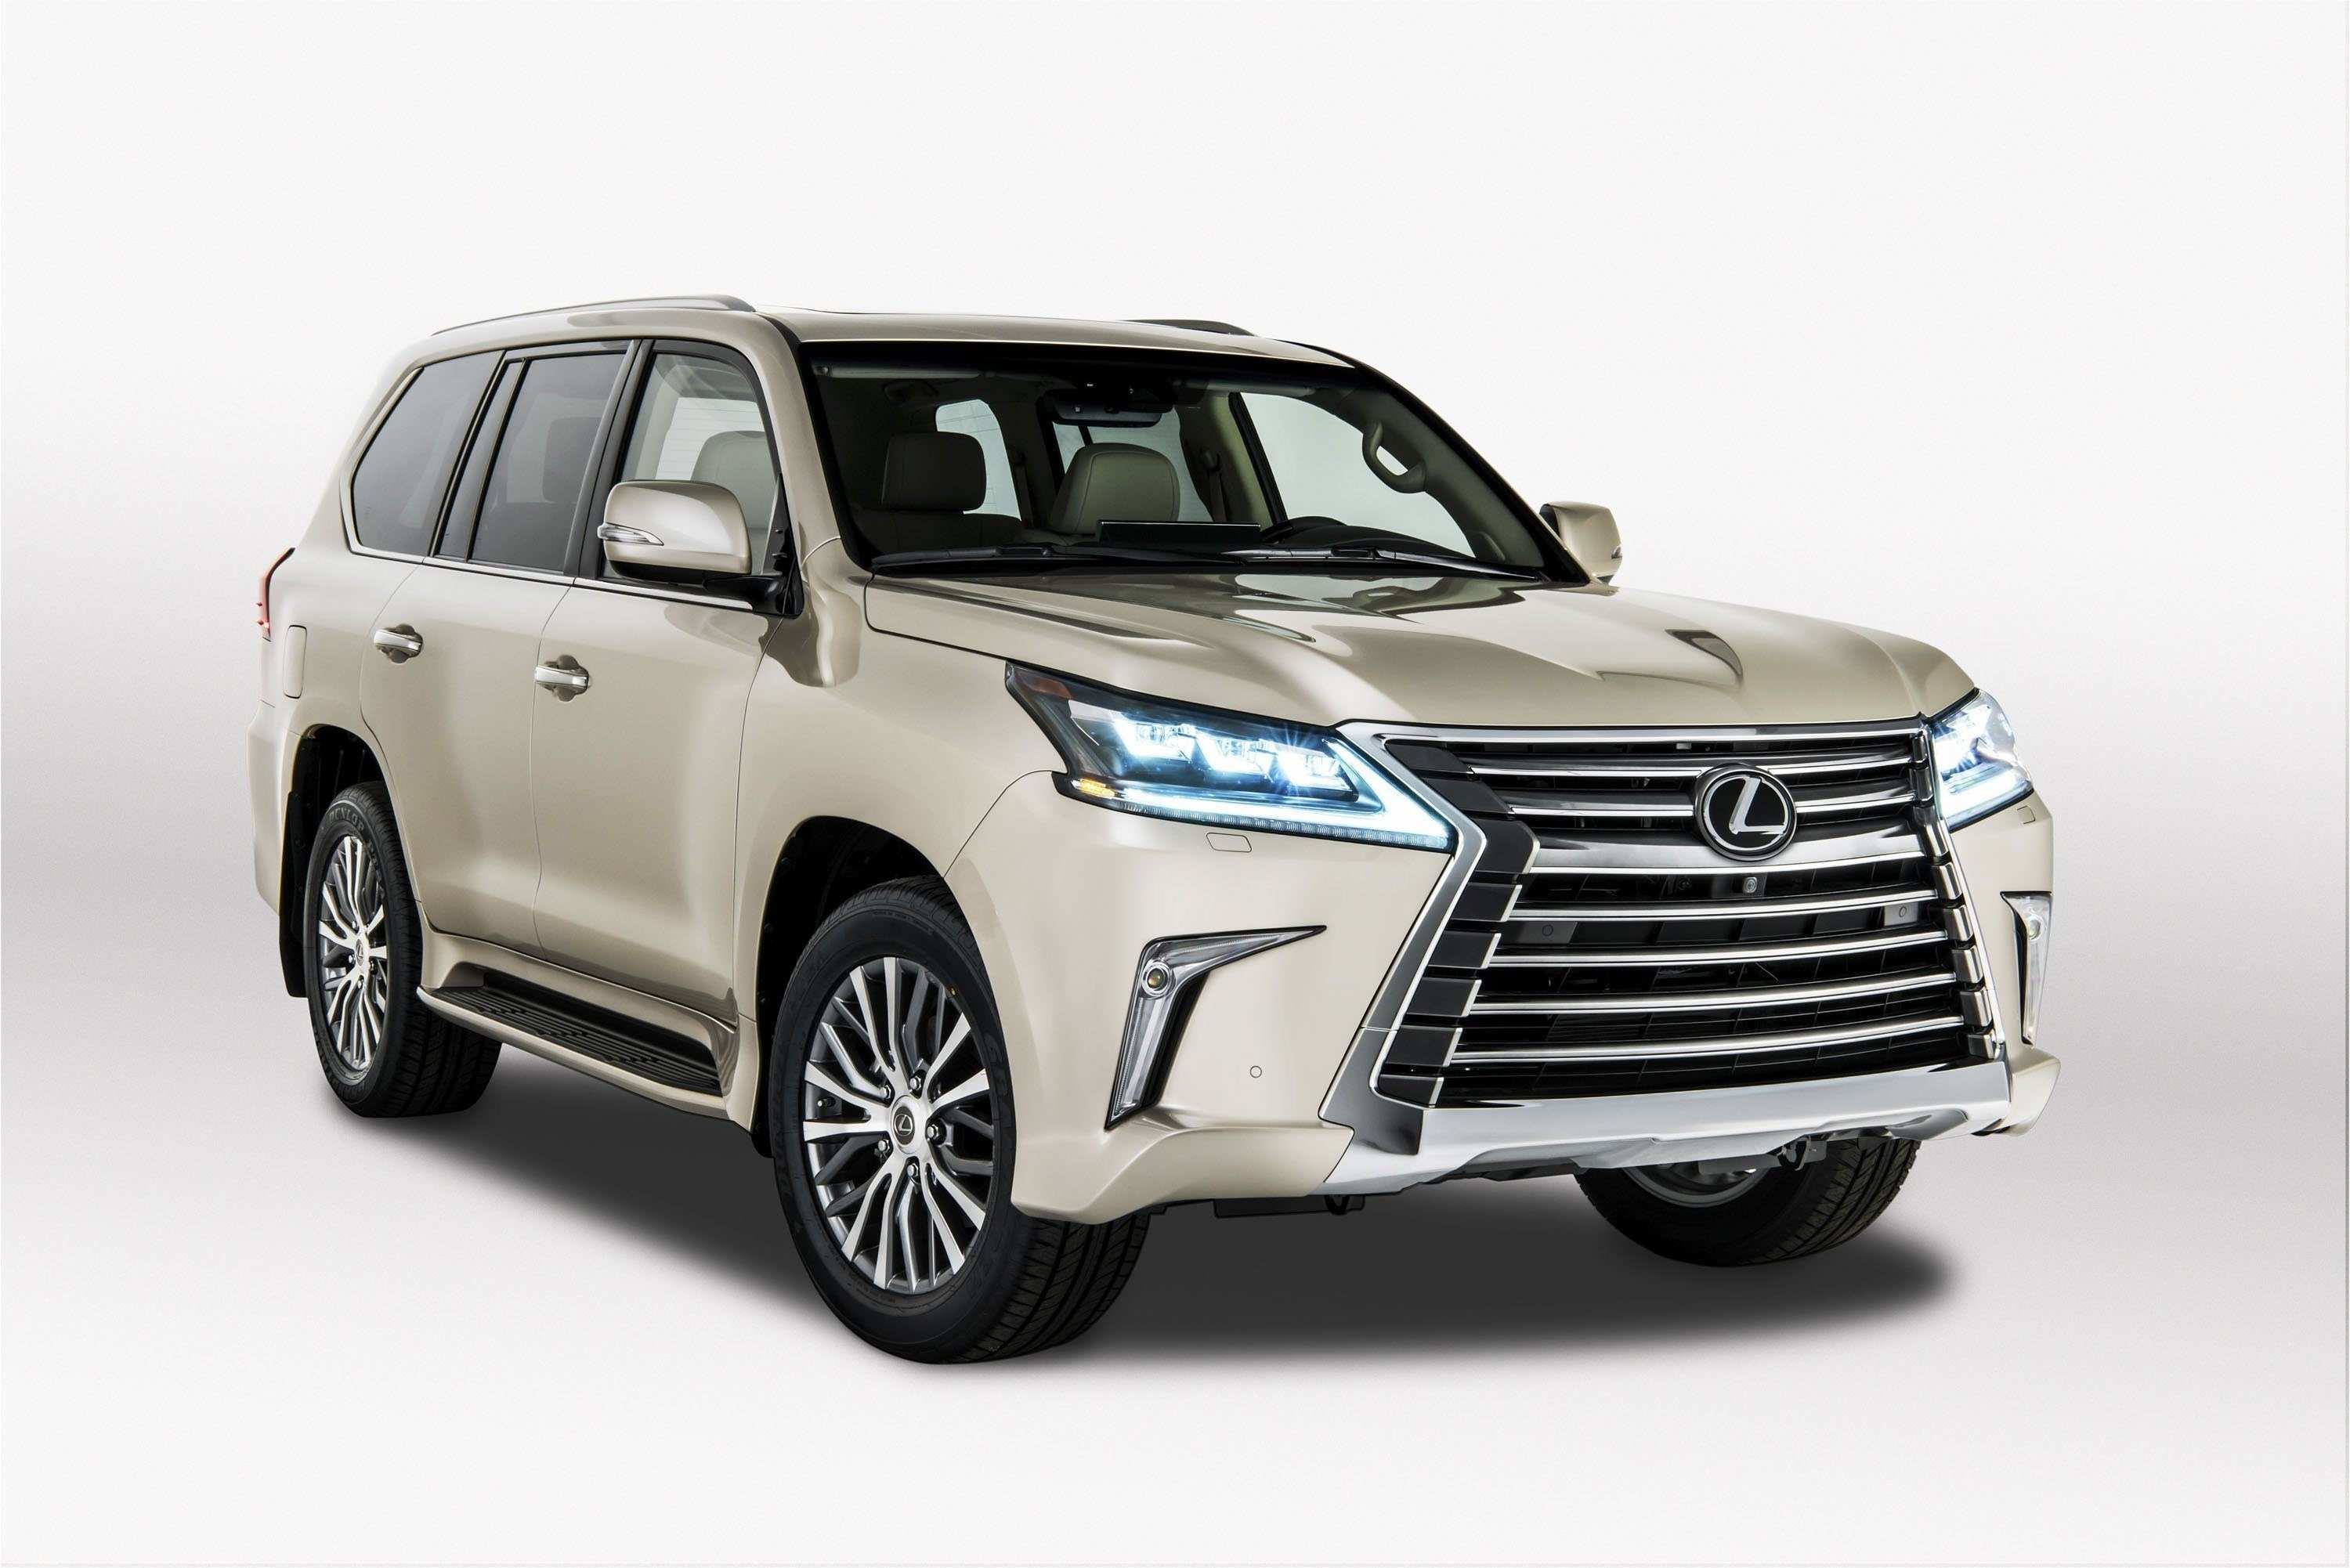 56 The Best 2019 Lexus Lx 570 Release Date Price And Review